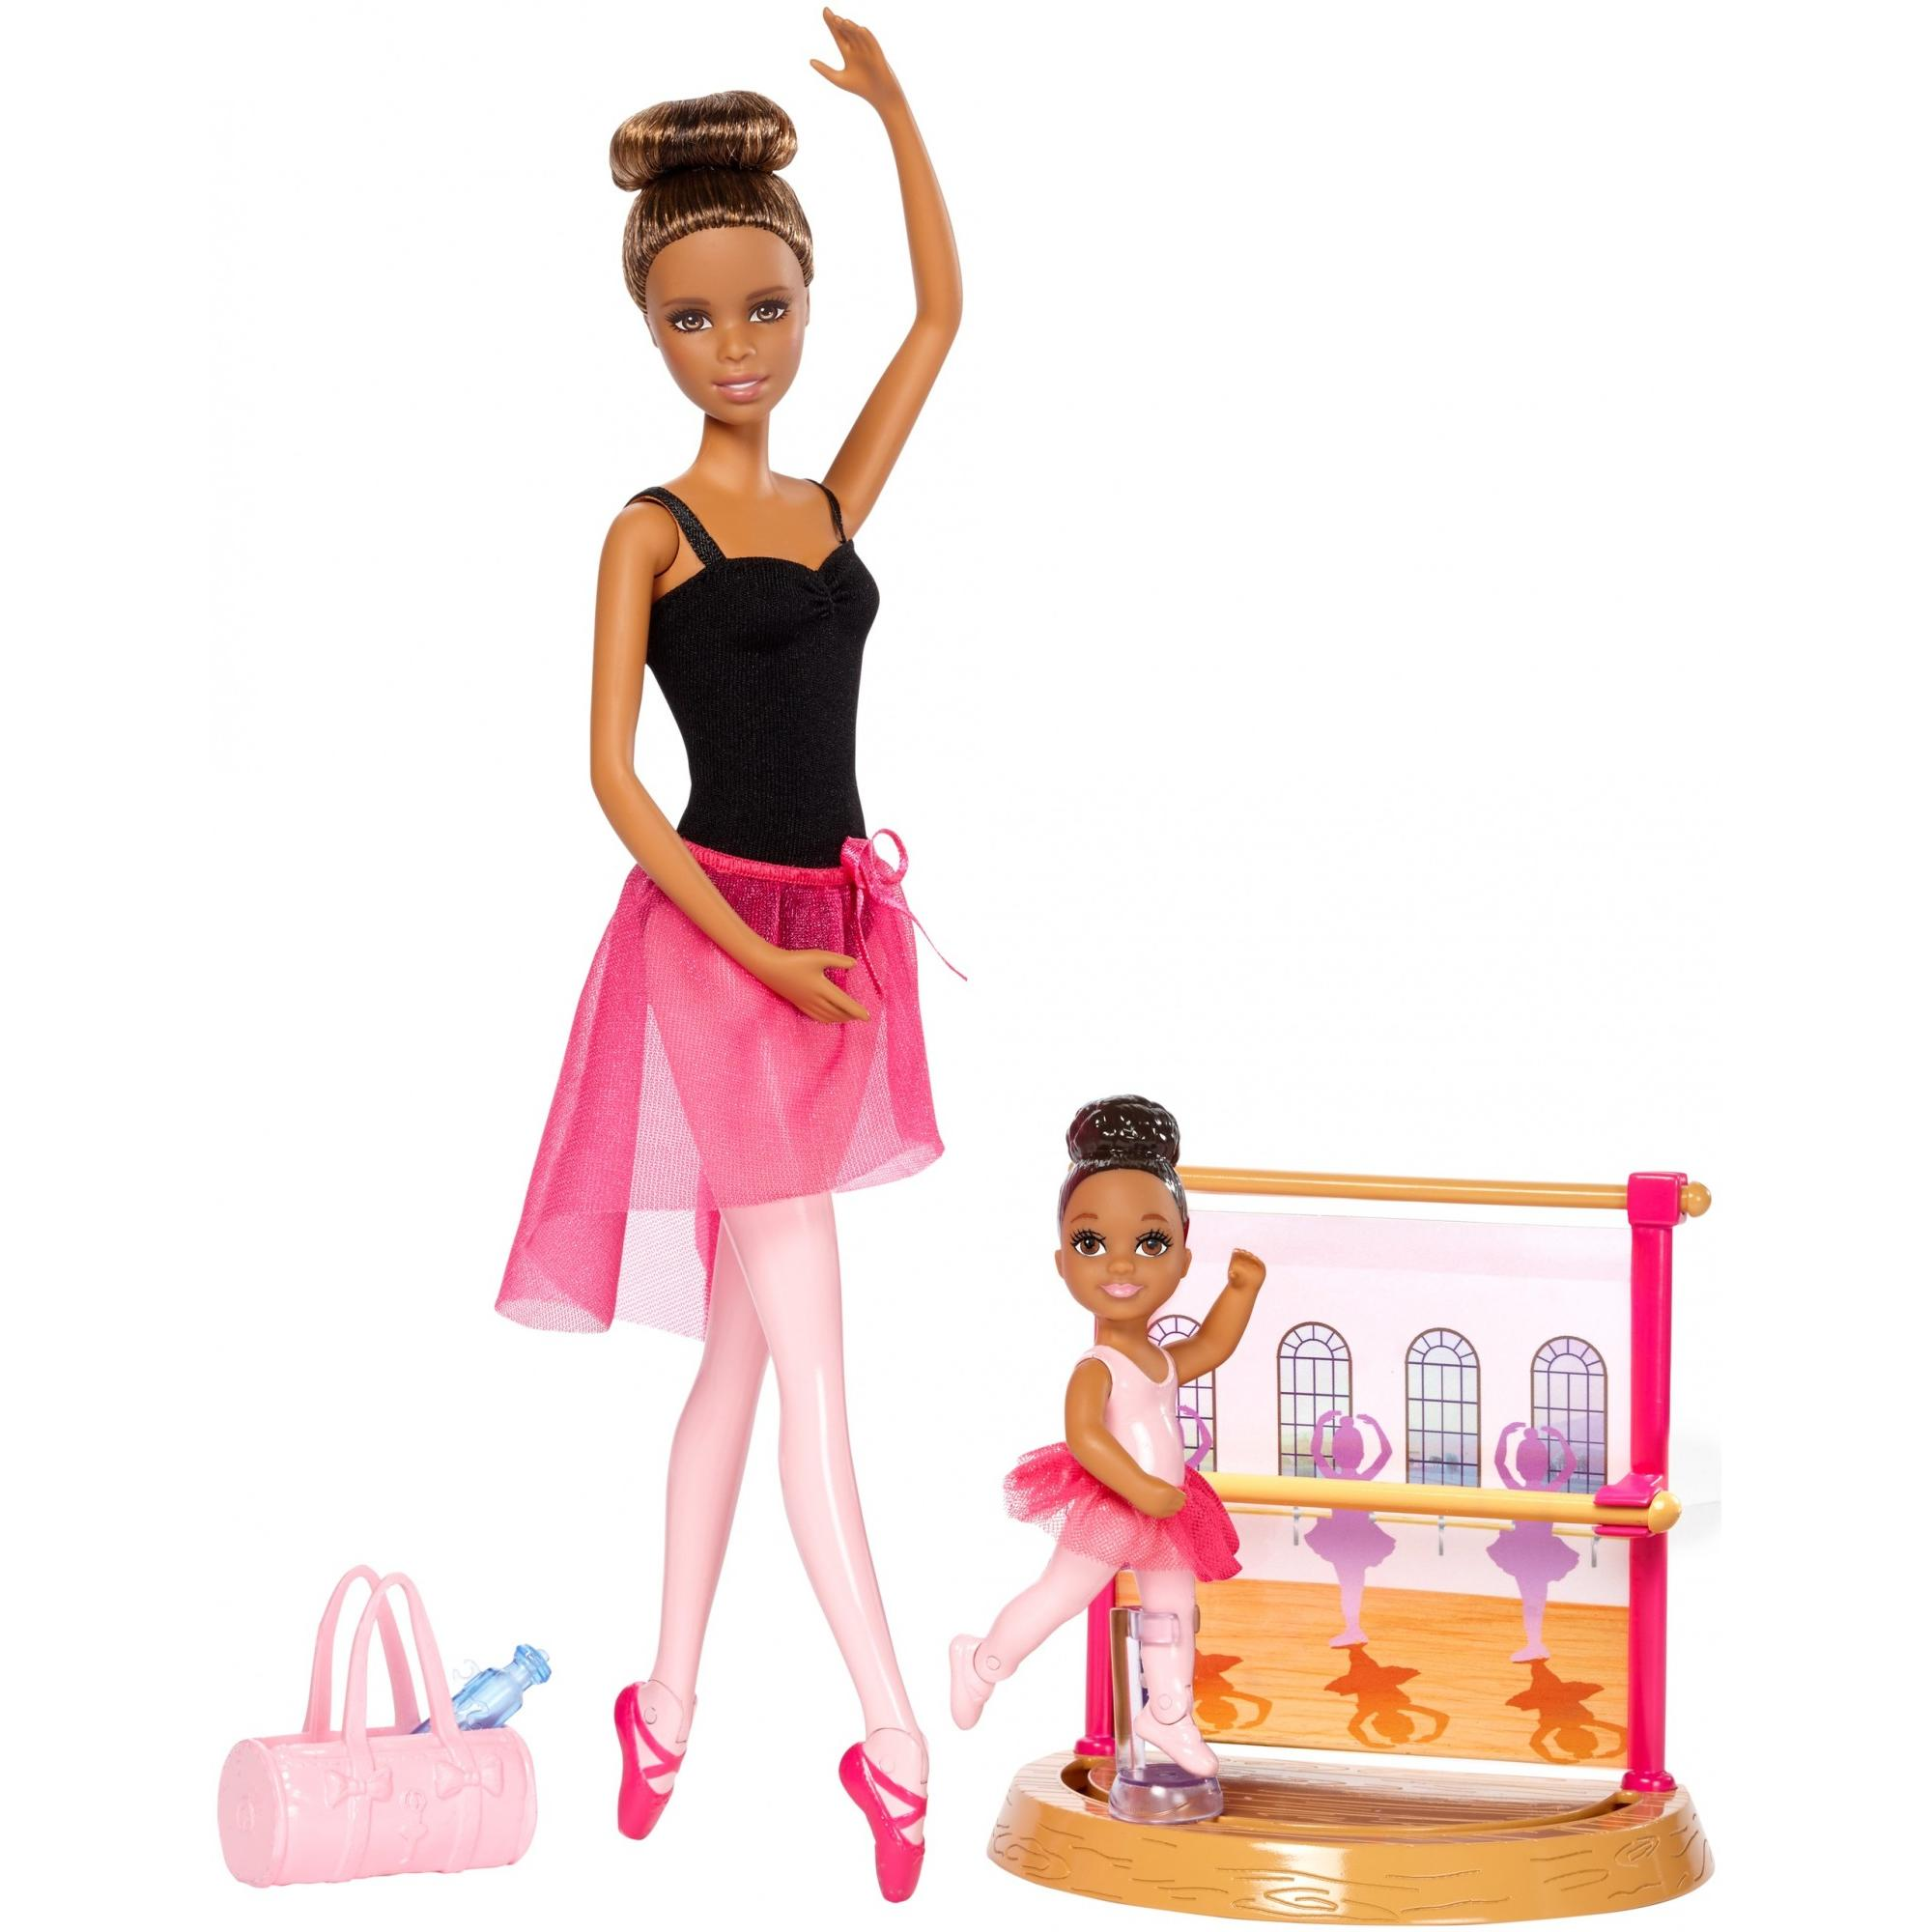 Barbie Ballet Instructor Playset and Nikki Doll by MATTEL INC.